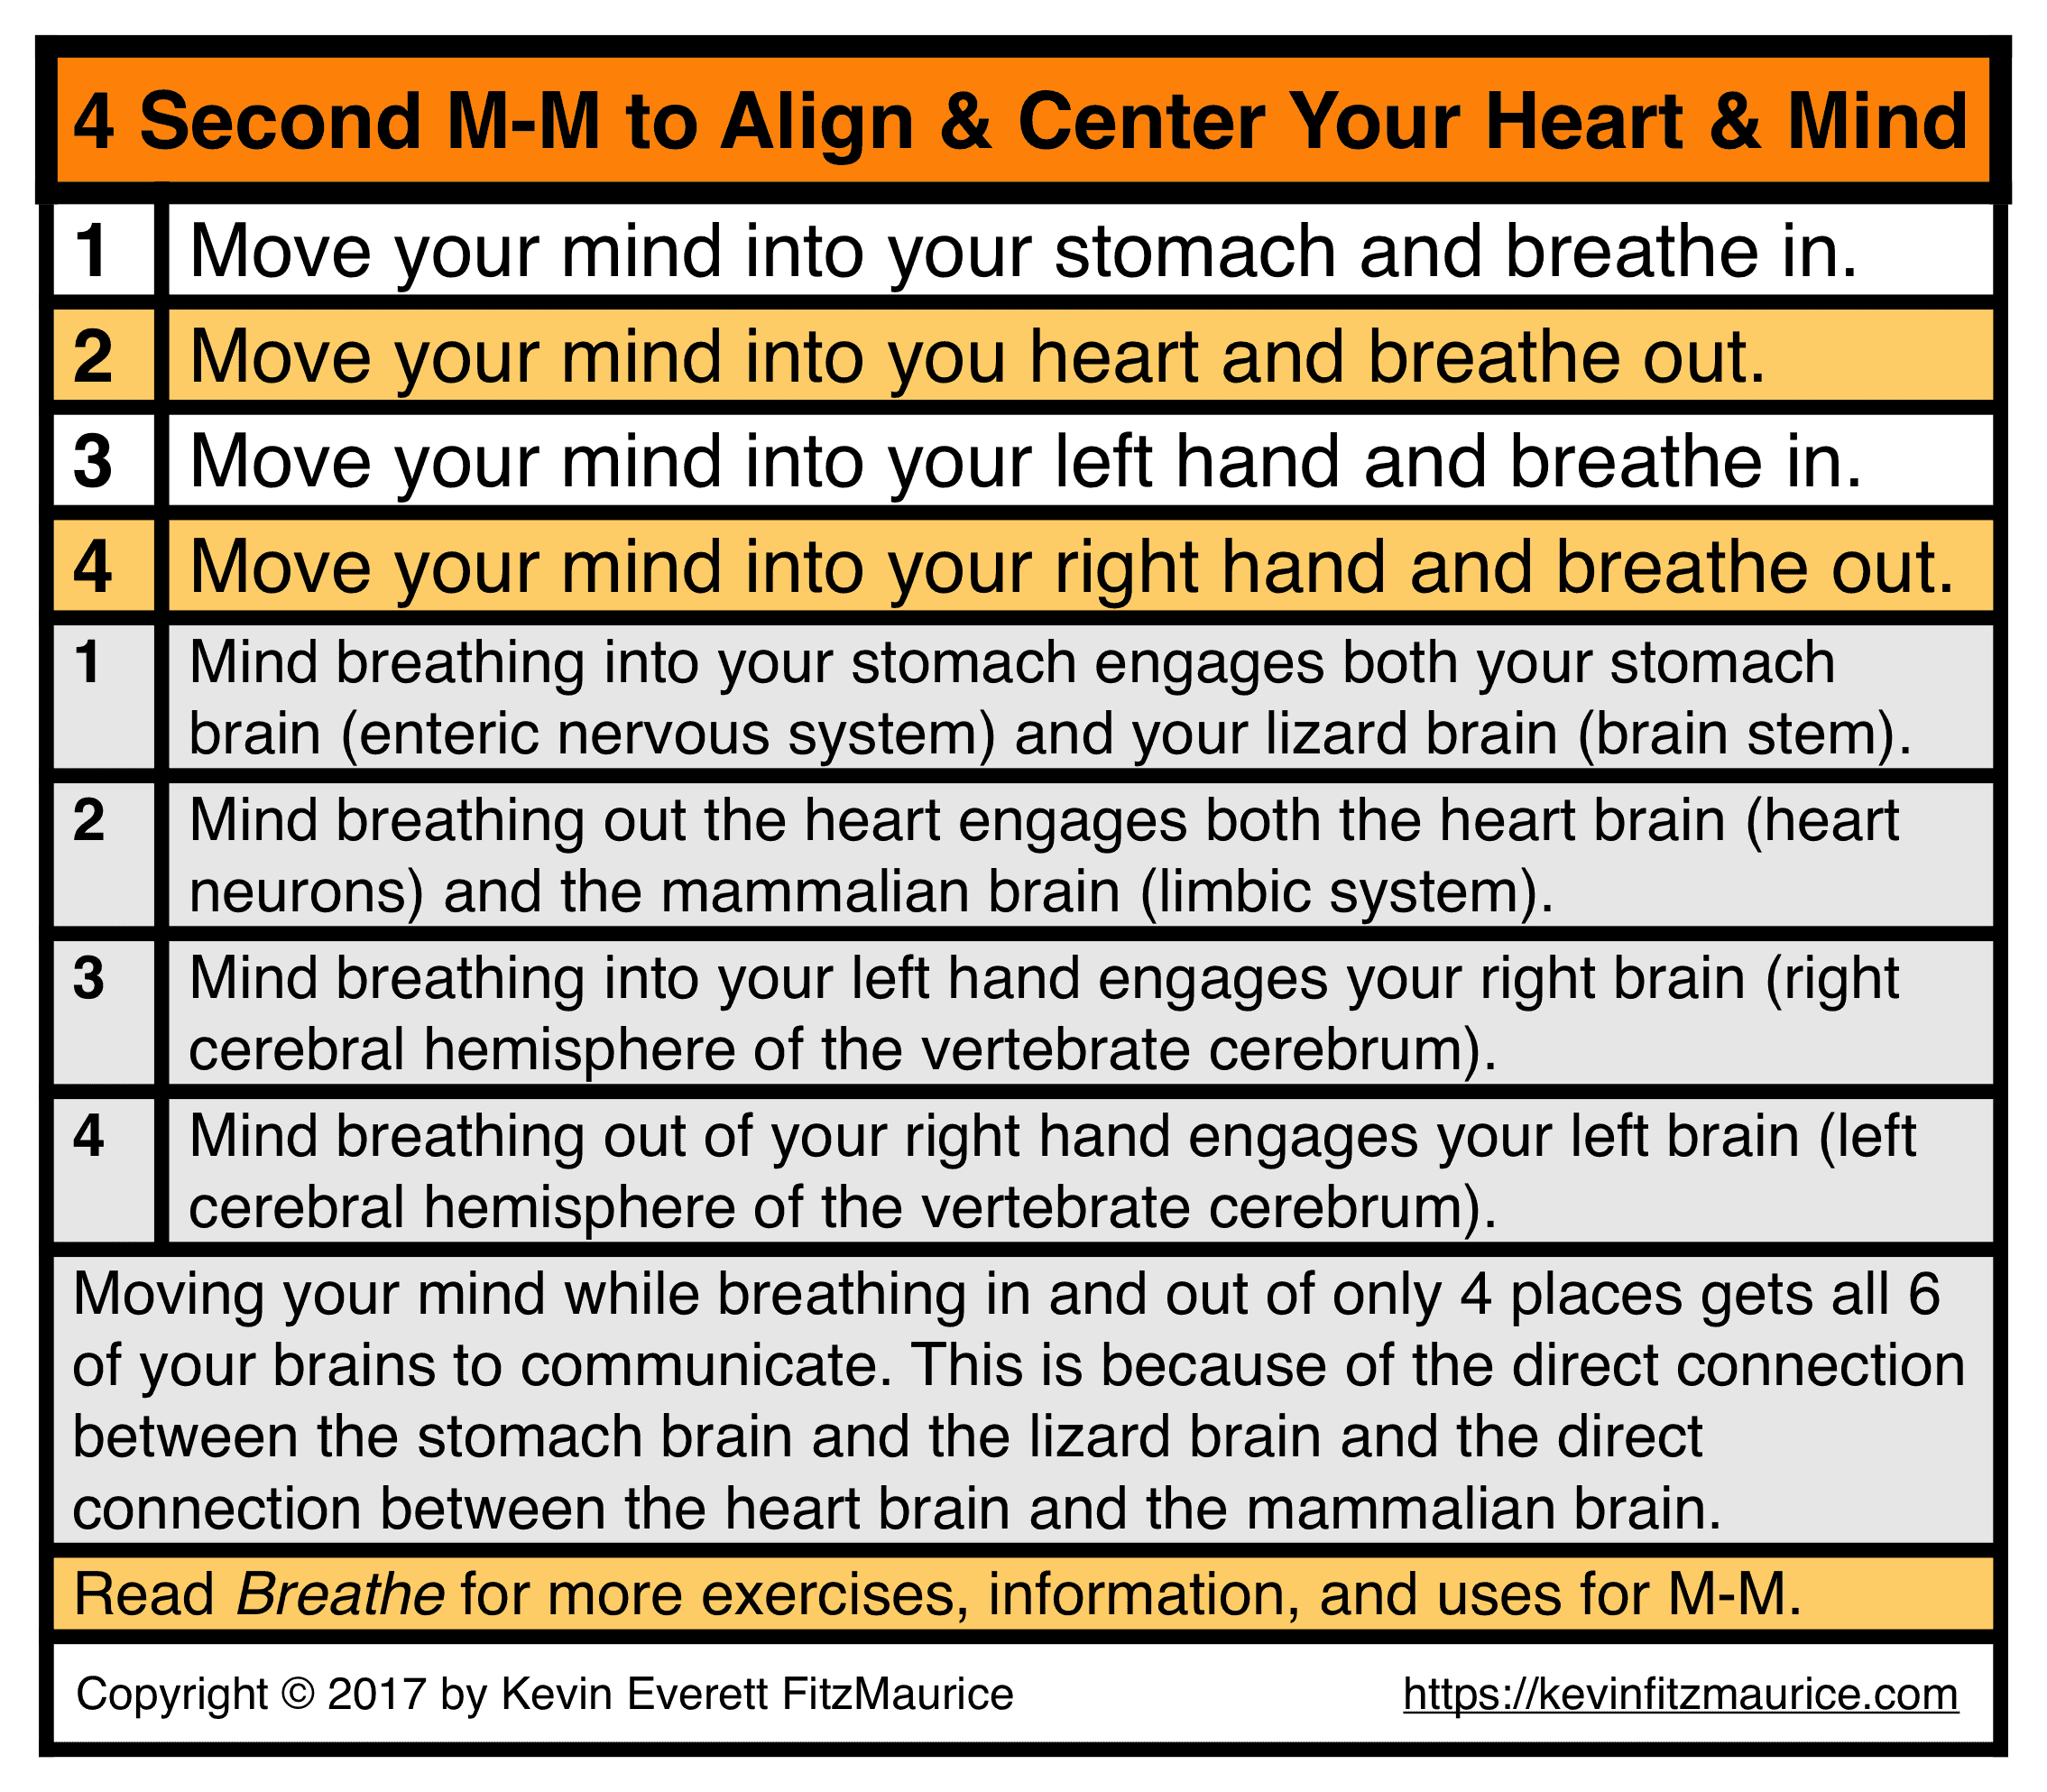 4 Second to M-M Heart & Mind into Alignment